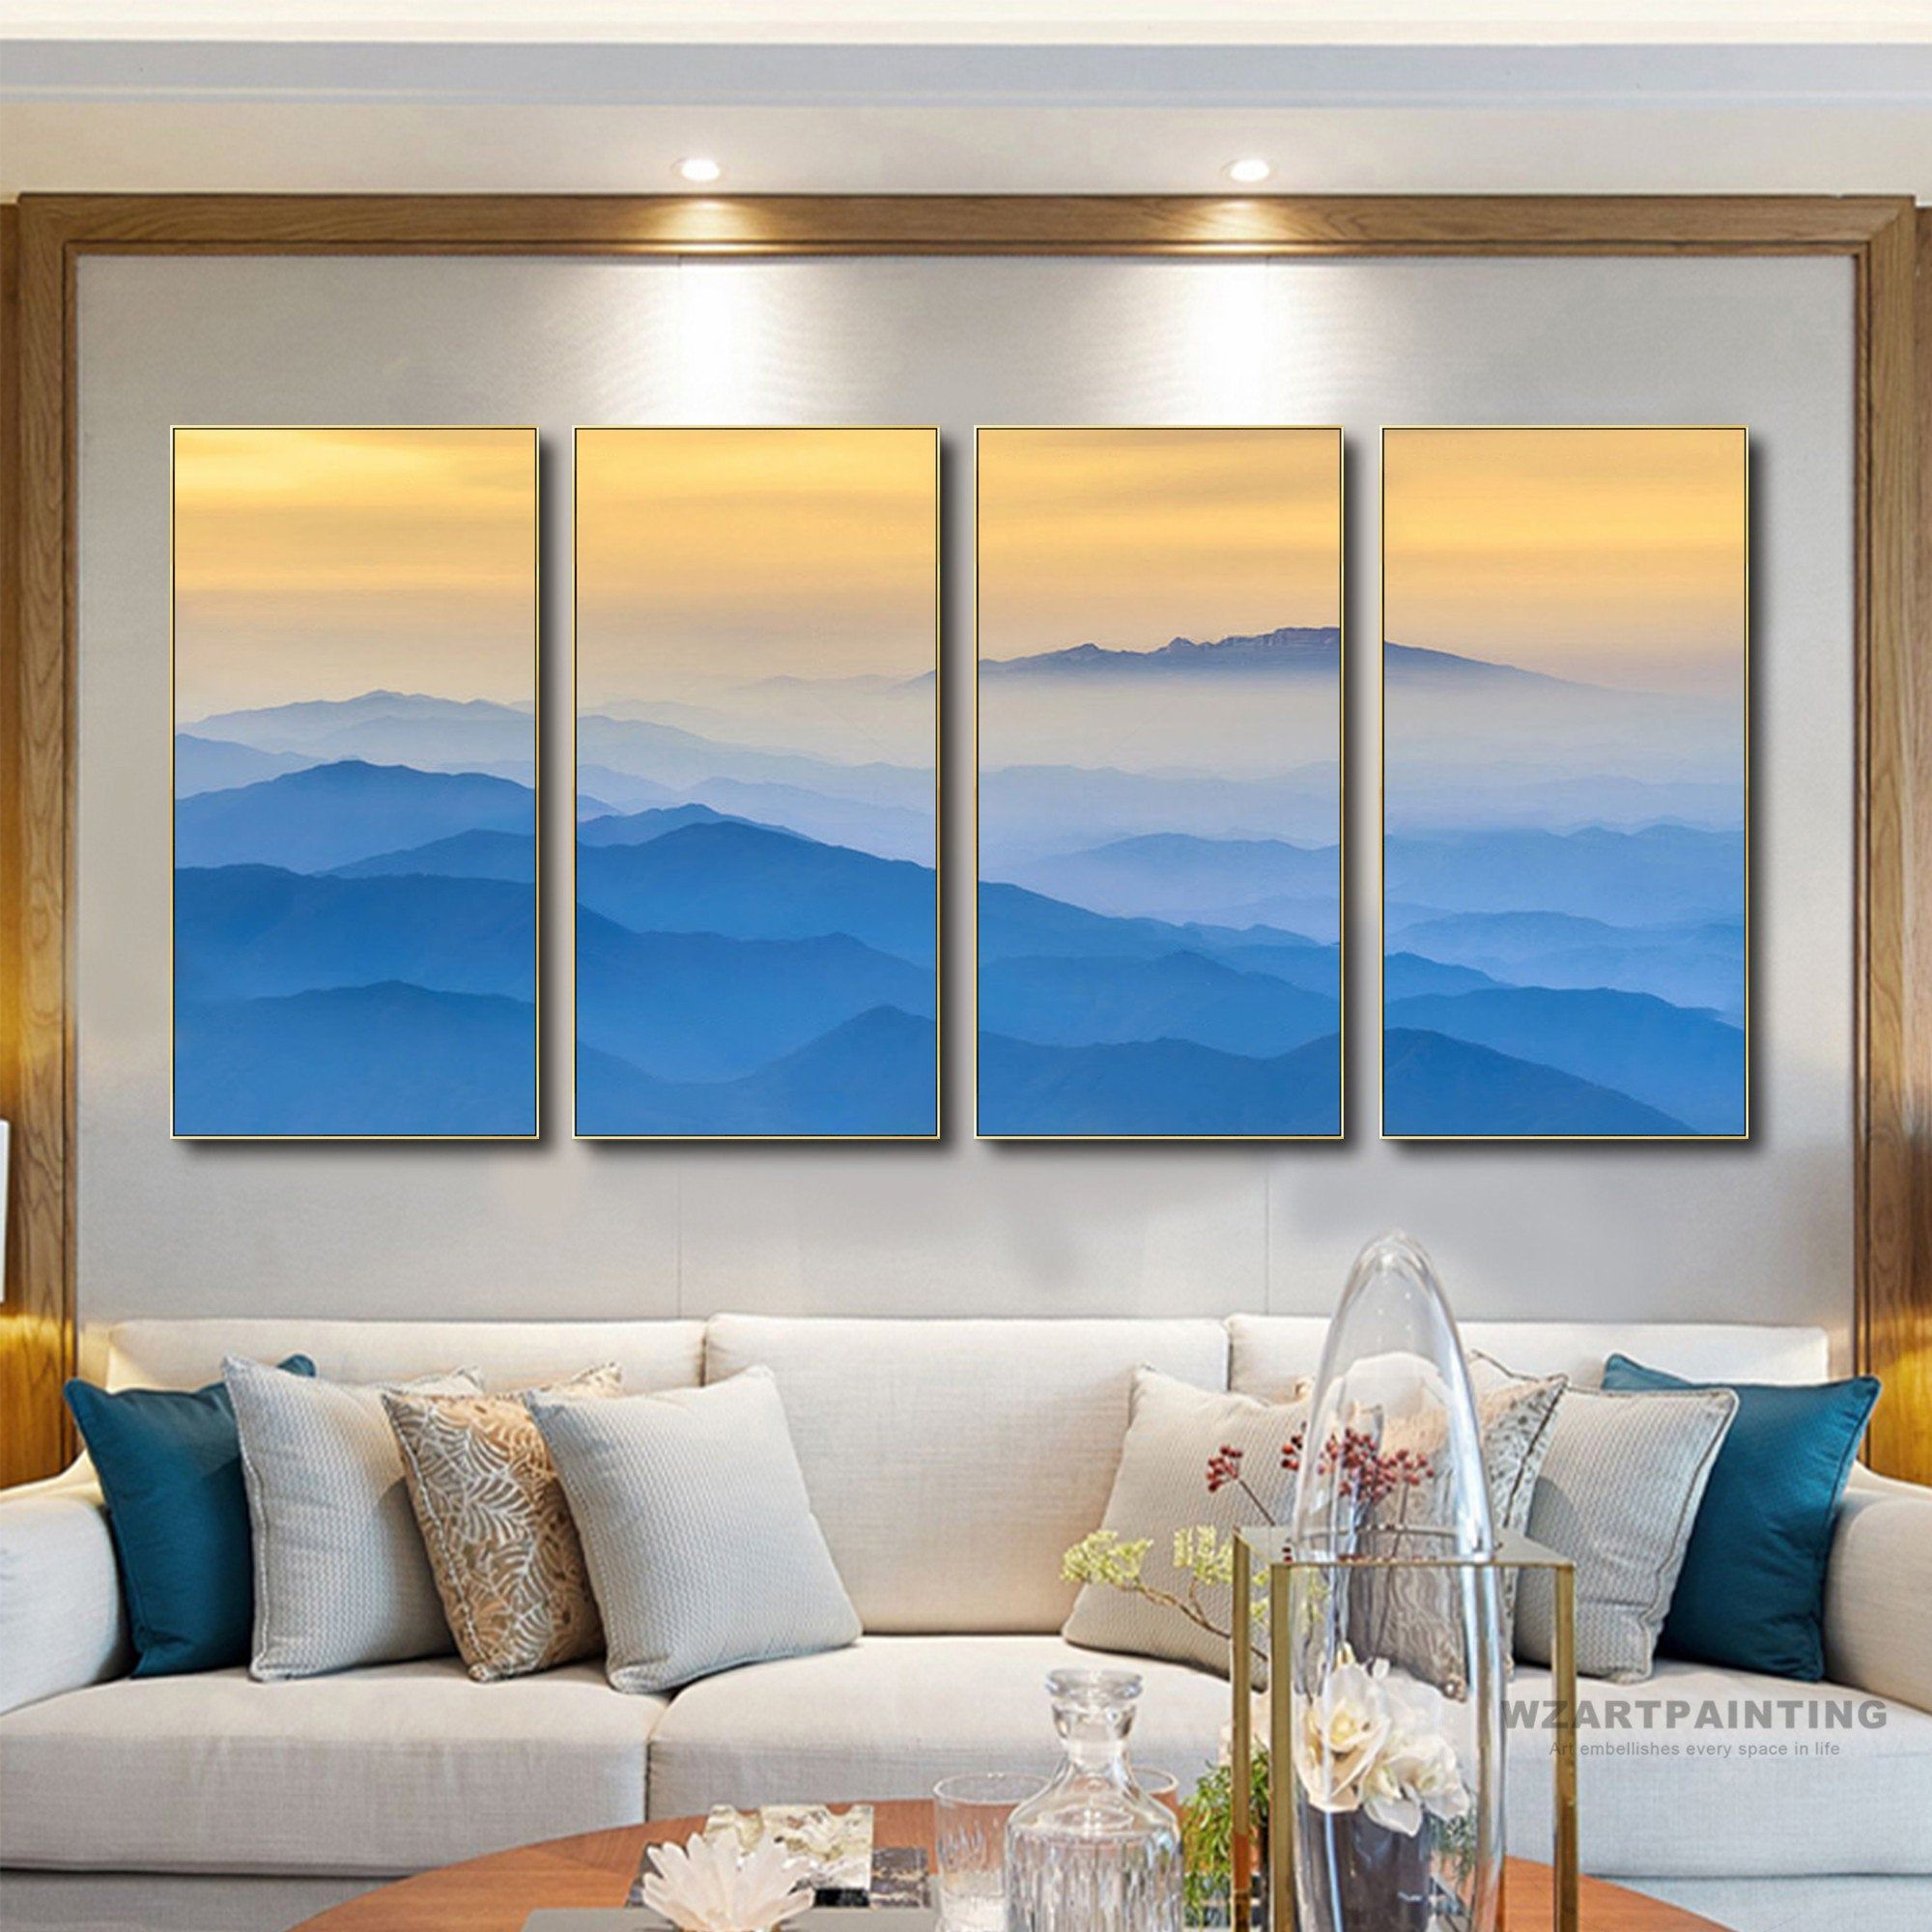 Framed Wall Art Set Of 4 Prints Abstract Mountain Landscape Blue Print Painting On Canvas Large Wall Art Framed Wall Art Sets Large Wall Art Wall Art Pictures